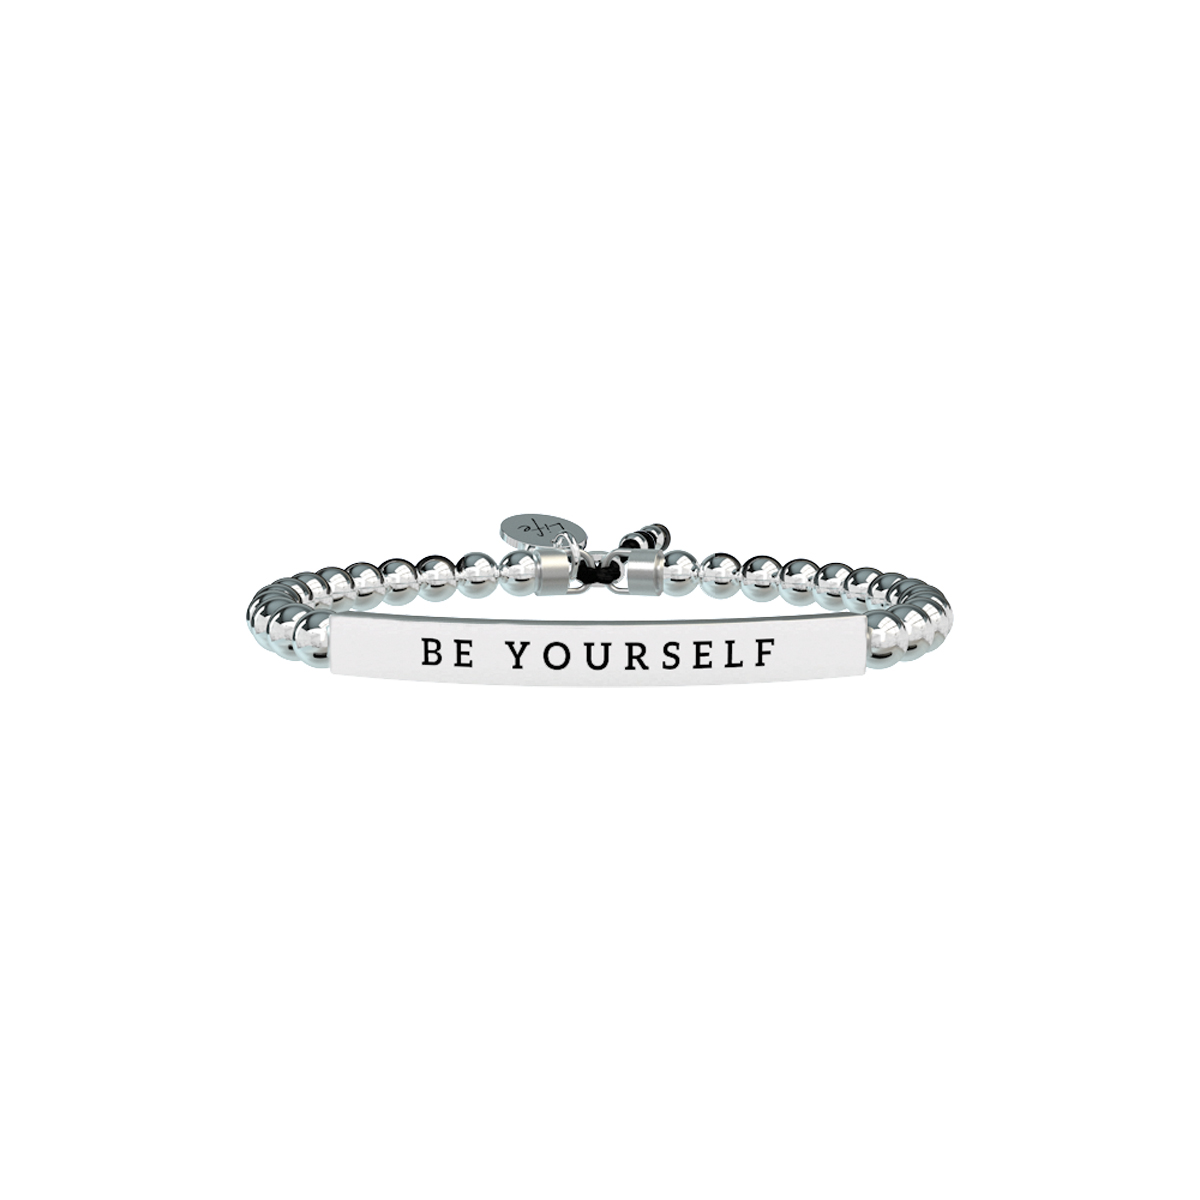 Bracciale KIDULT Philosophy acciaio 316L 731375 Be yourself